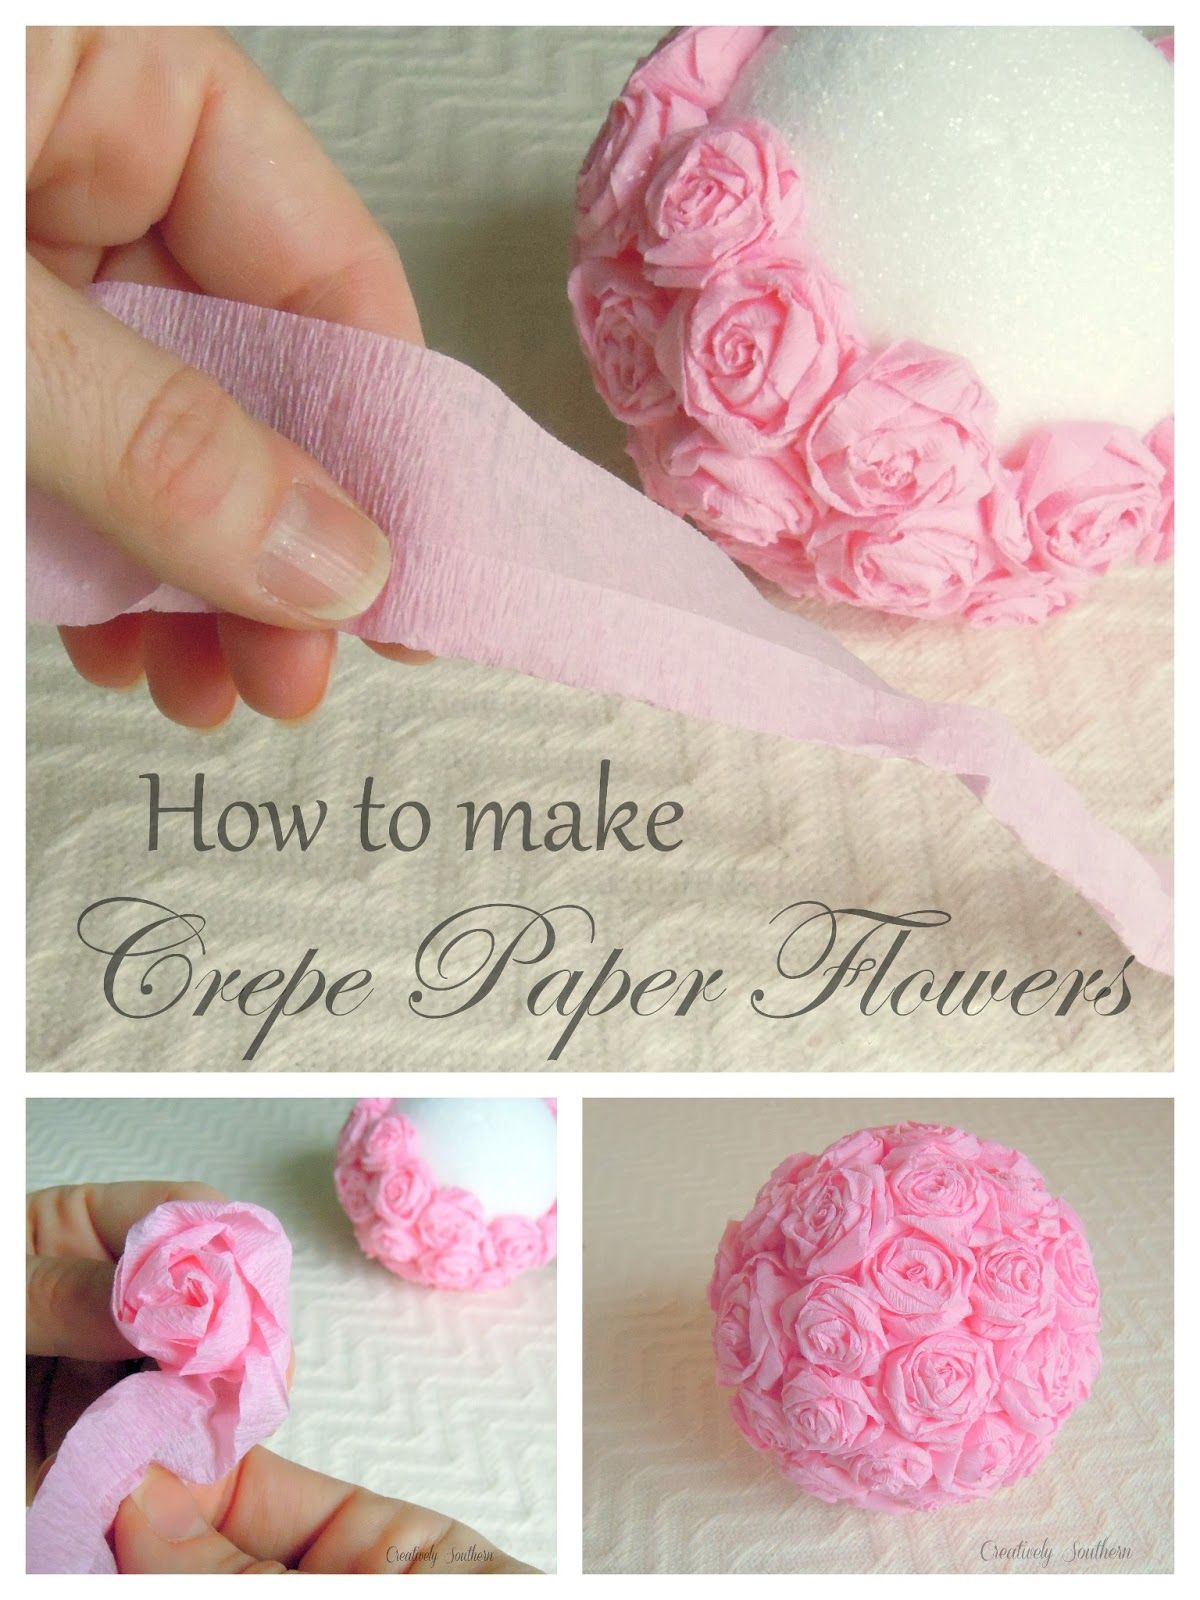 Crepe Paper Flowers Craft Idea Crepe Paper Crepes And Southern